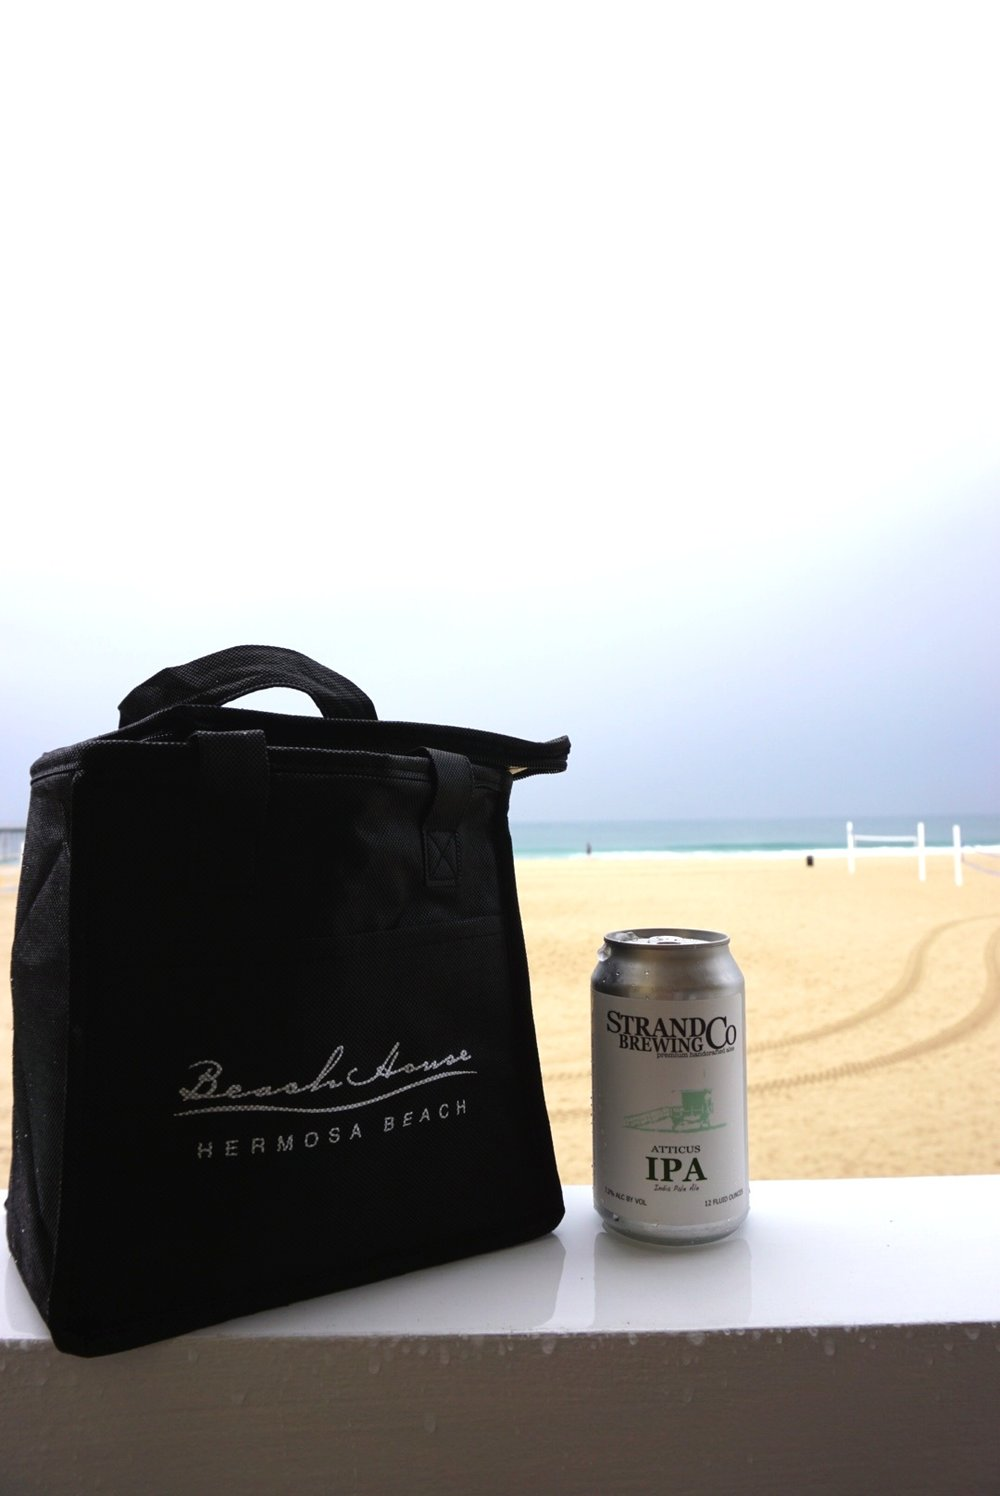 Strand Brewing Company-a local brewery in Torrance, CA is offered at Beach House Hermosa Beach.